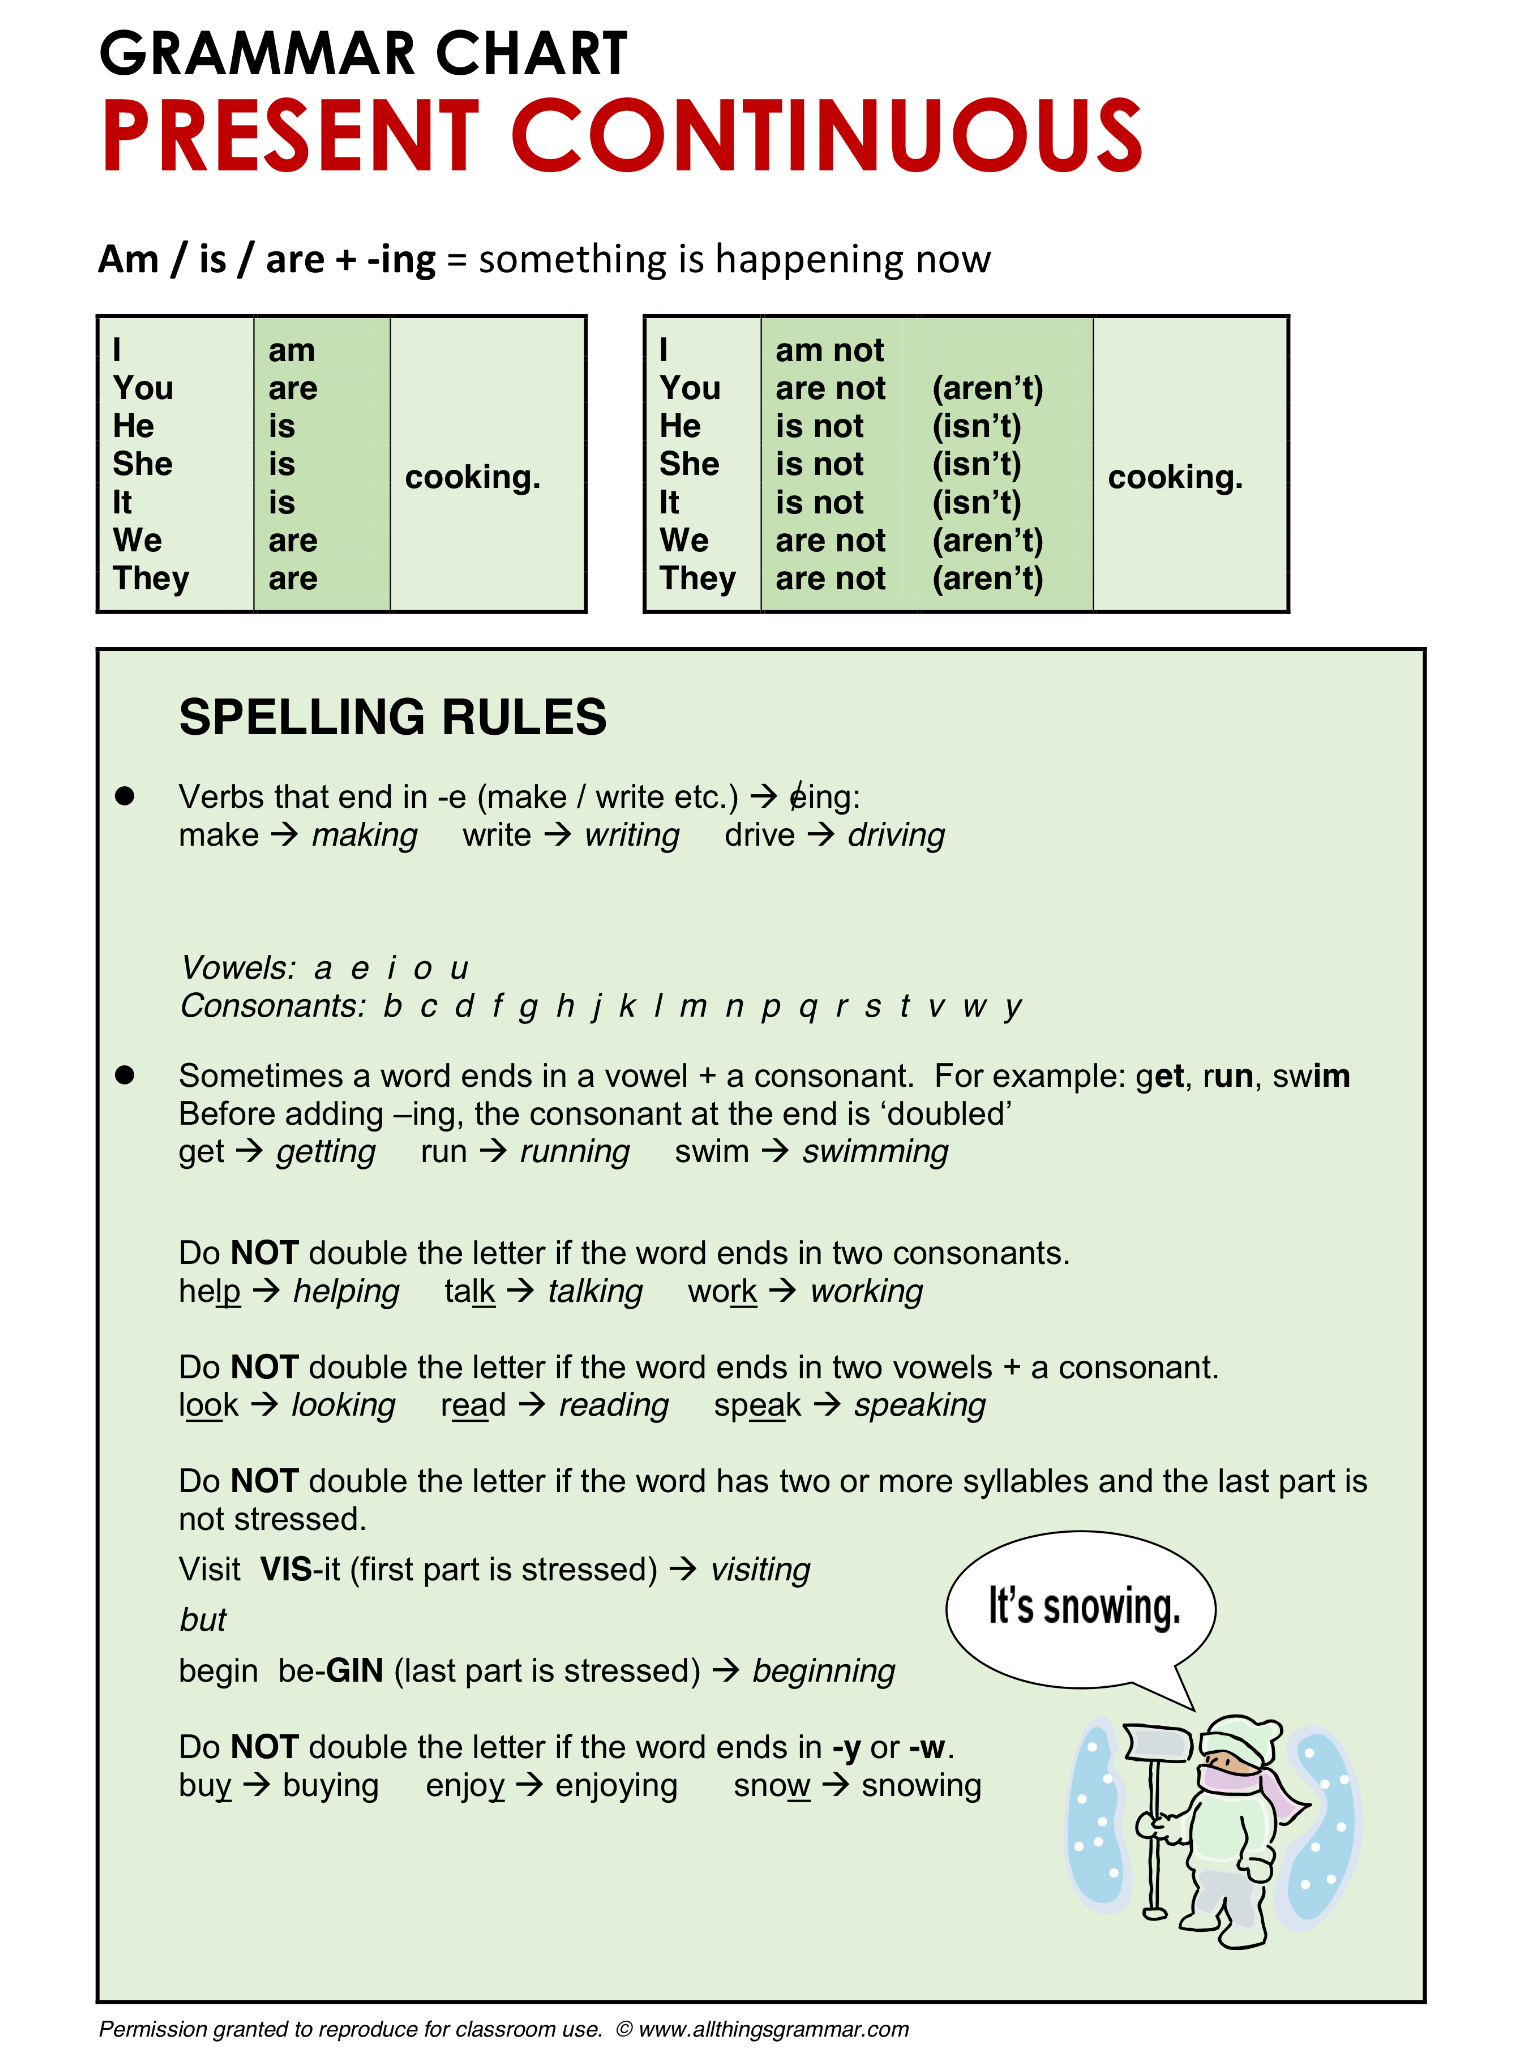 worksheet Spelling Rules Worksheets english grammar present continuous spelling rules www allthingsgrammar compresent continuous